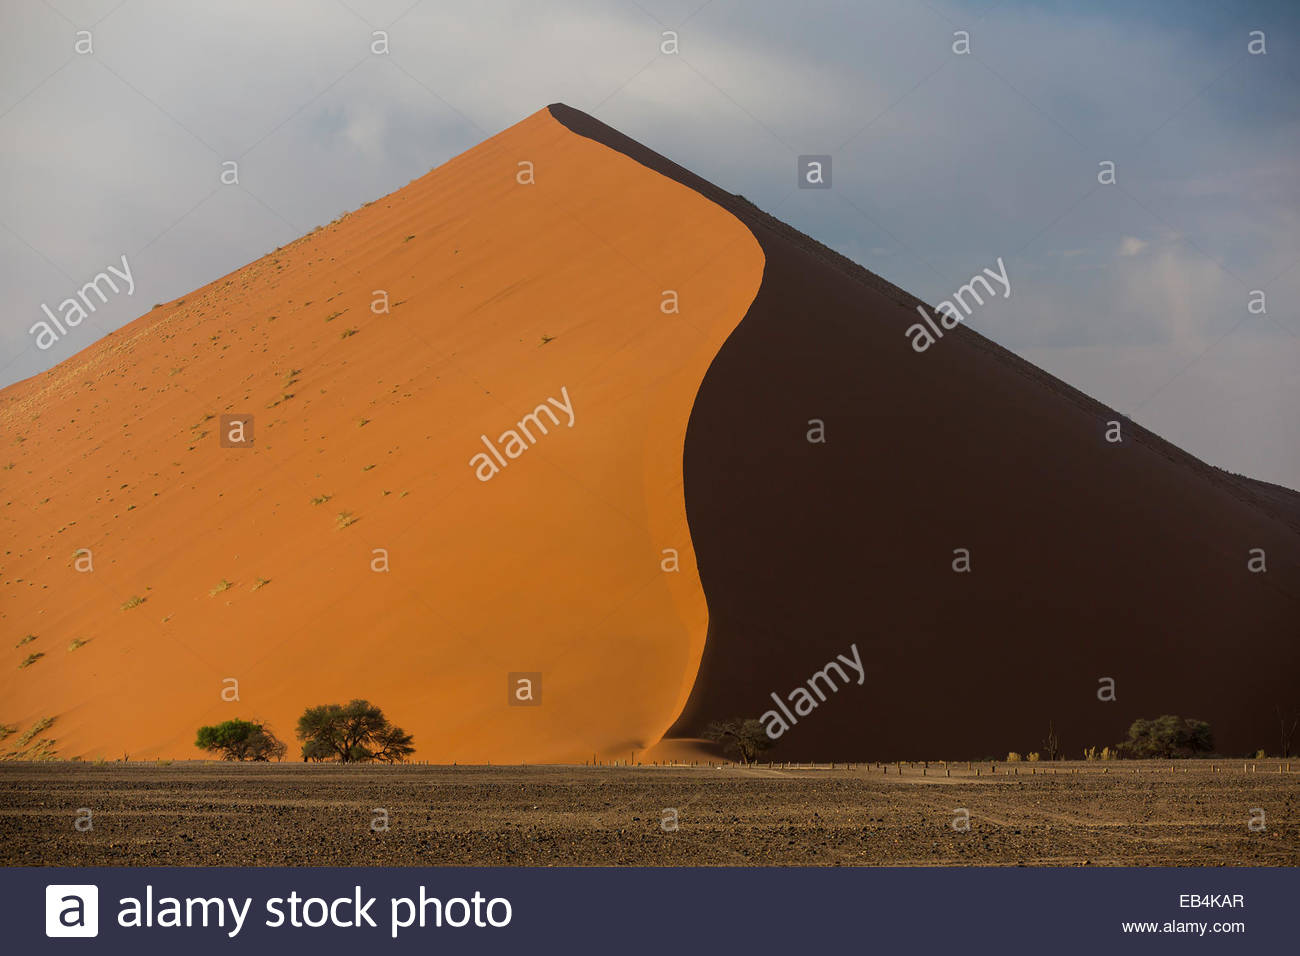 A towering sand dune of immense proportions in sunlight and shadow, in the Namib Desert. - Stock Image